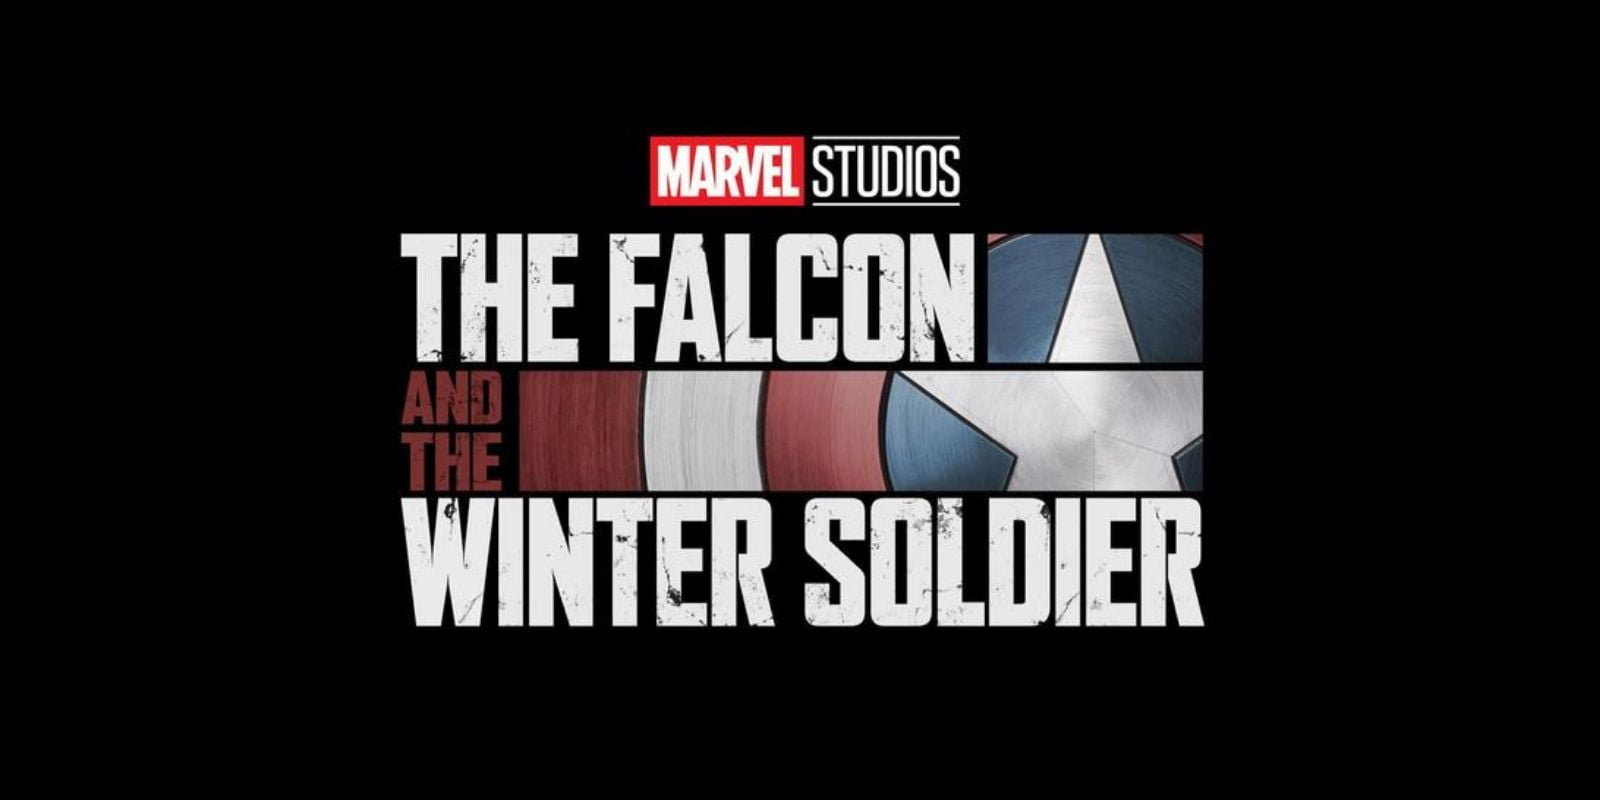 """The Falcon and the Winter Soldier"" Disney+ show logo"